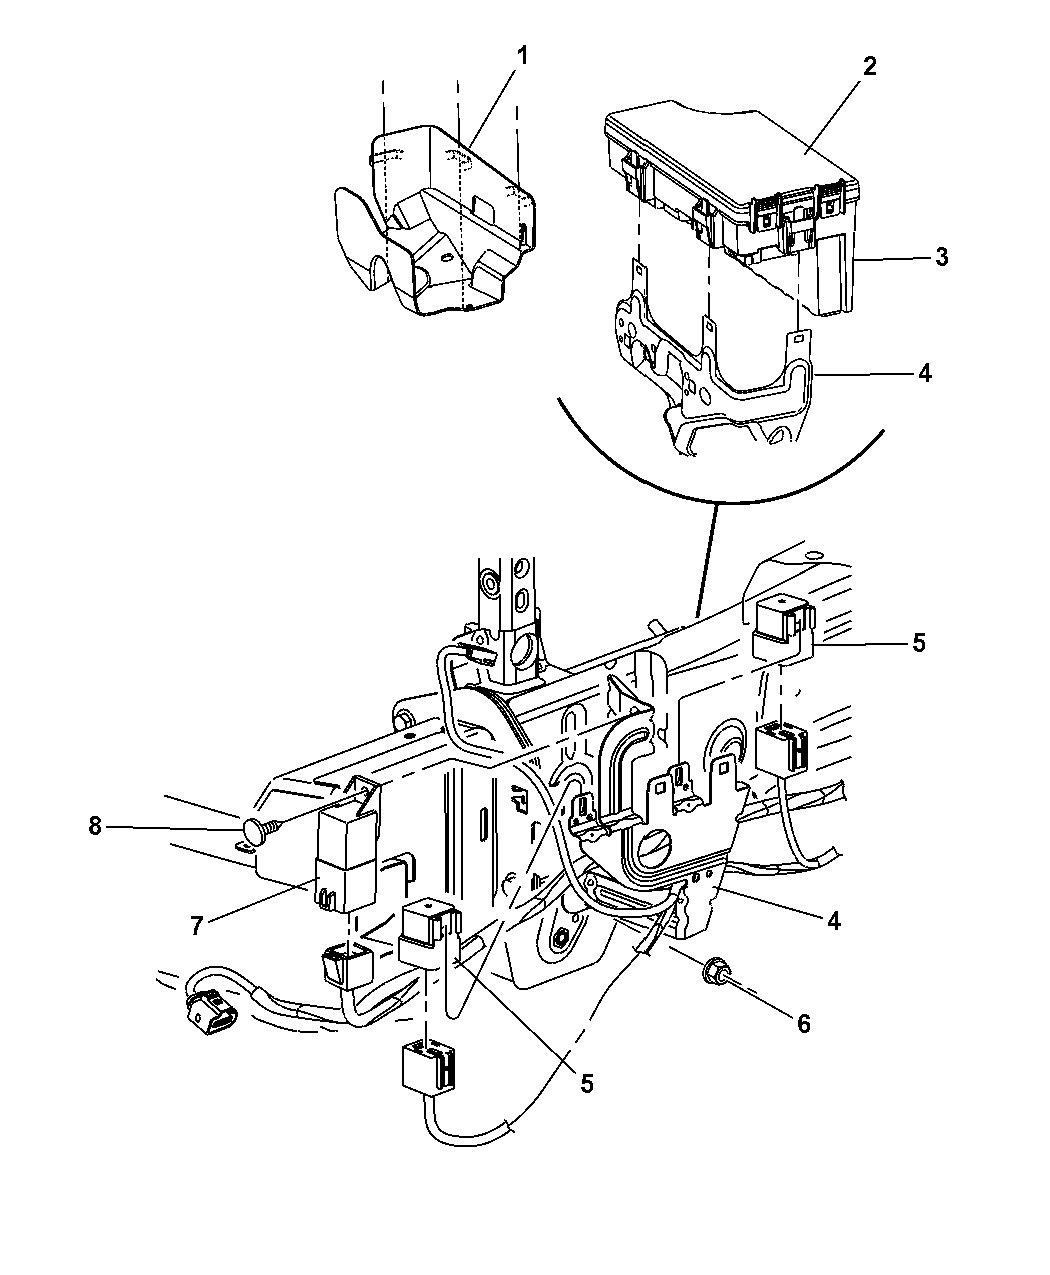 wiring mercury diagram motor outboard og251541 best wiring library  related with 2015 jeep patriot fuel filter location 2007 chevy avalanche speaker wiring diagram